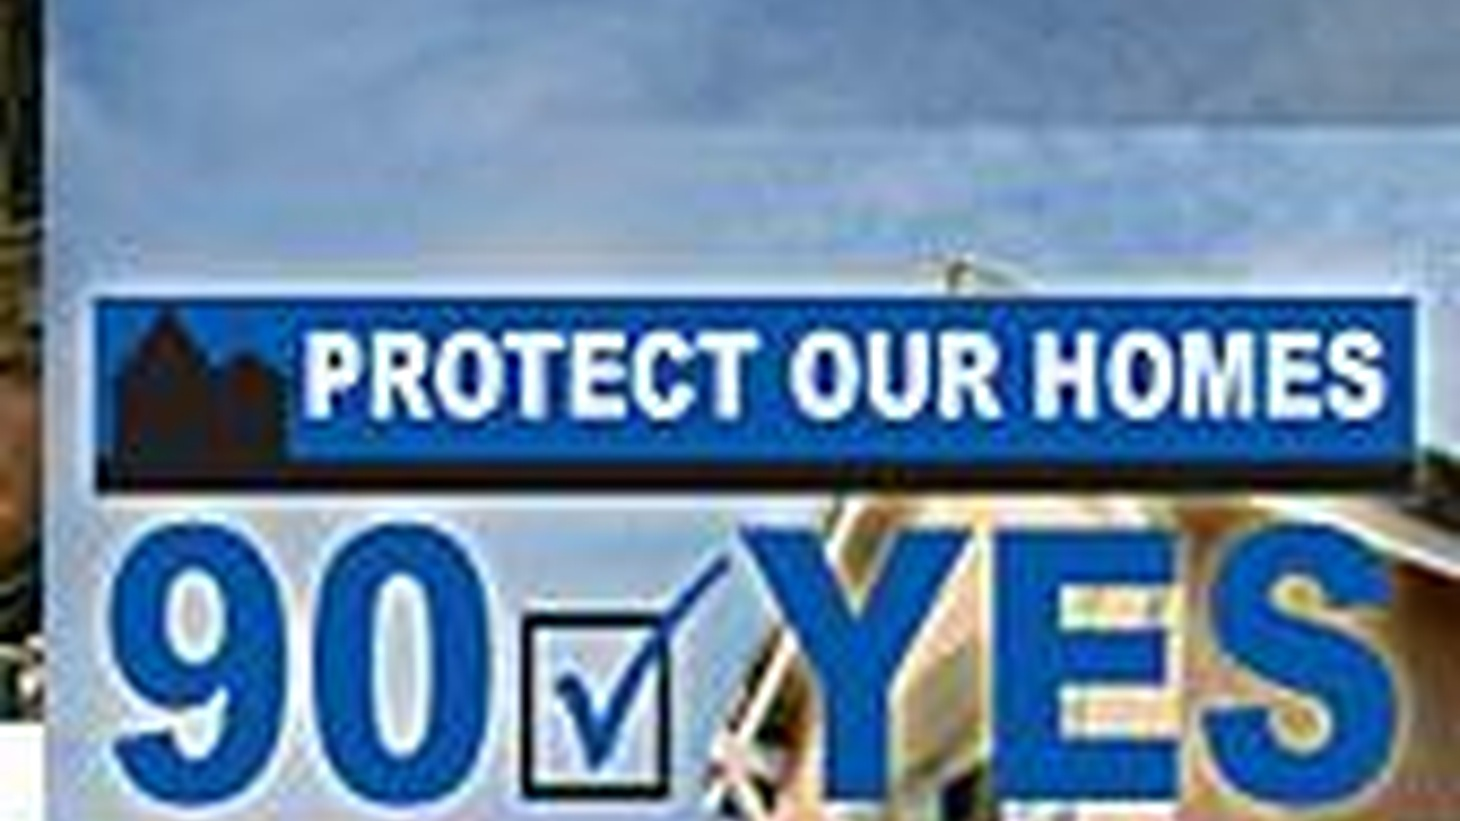 Proposition 90 would limit government power to seize private property, but opponents claim it would also gut California's environmental protections. We hear both sides. Plus,   the California Attorney General files criminal complaints against the former chair of Hewlett-Packard.